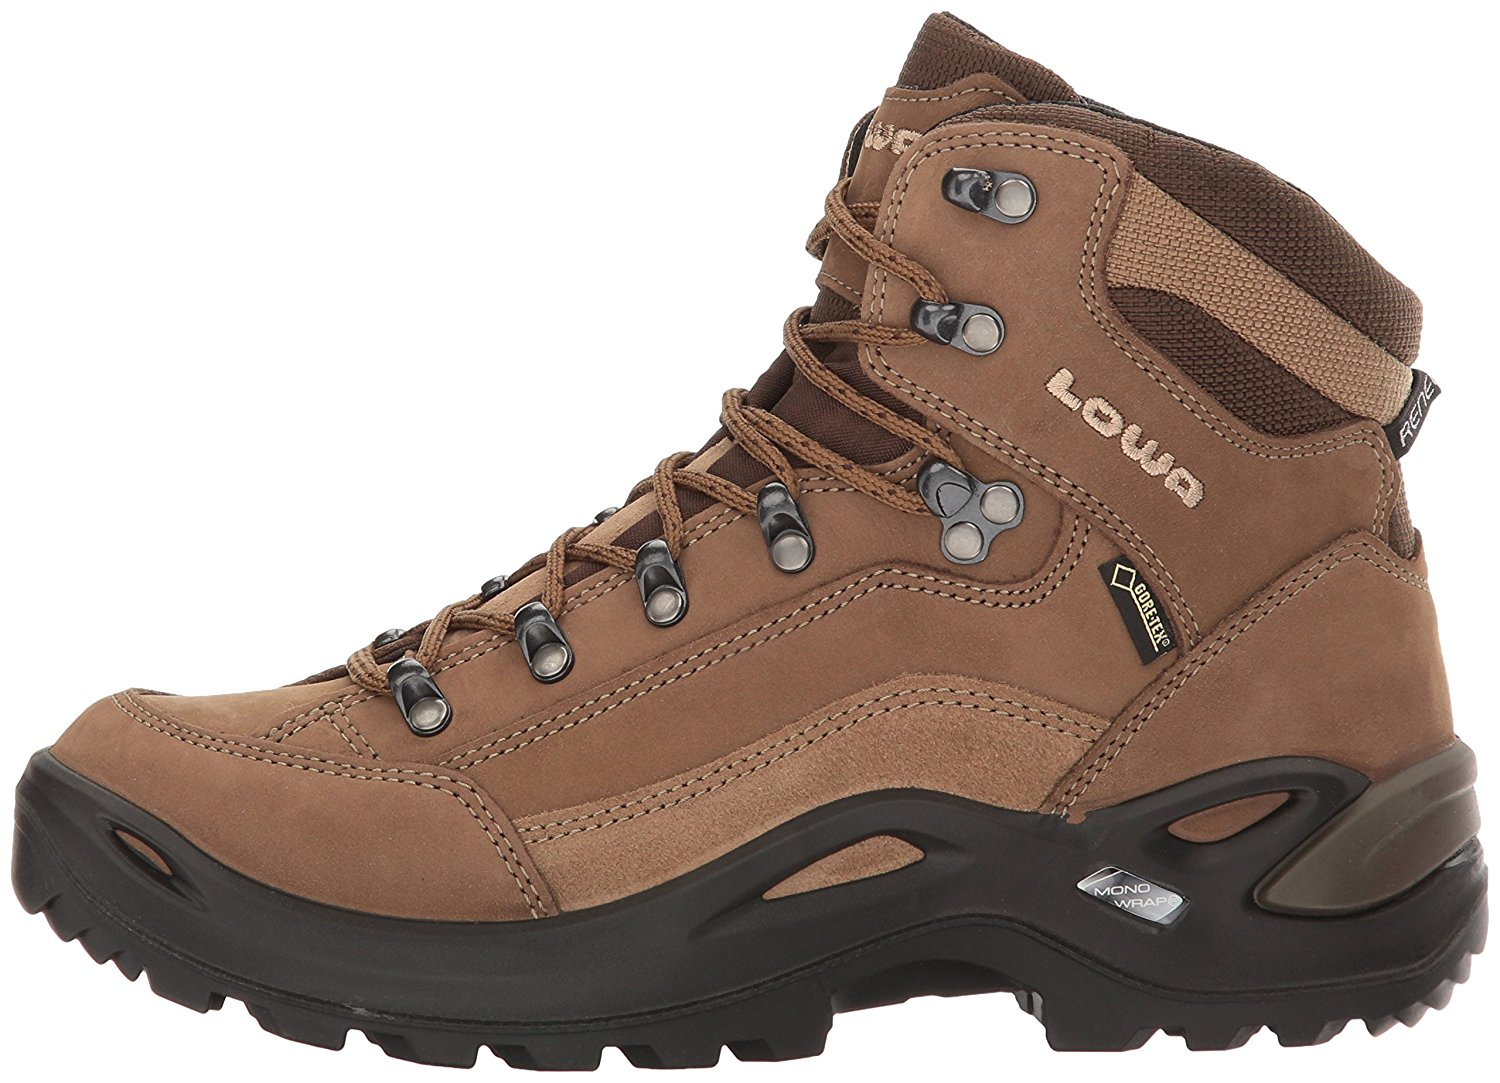 Side view of the Lowa Renegade GTX hiking boot